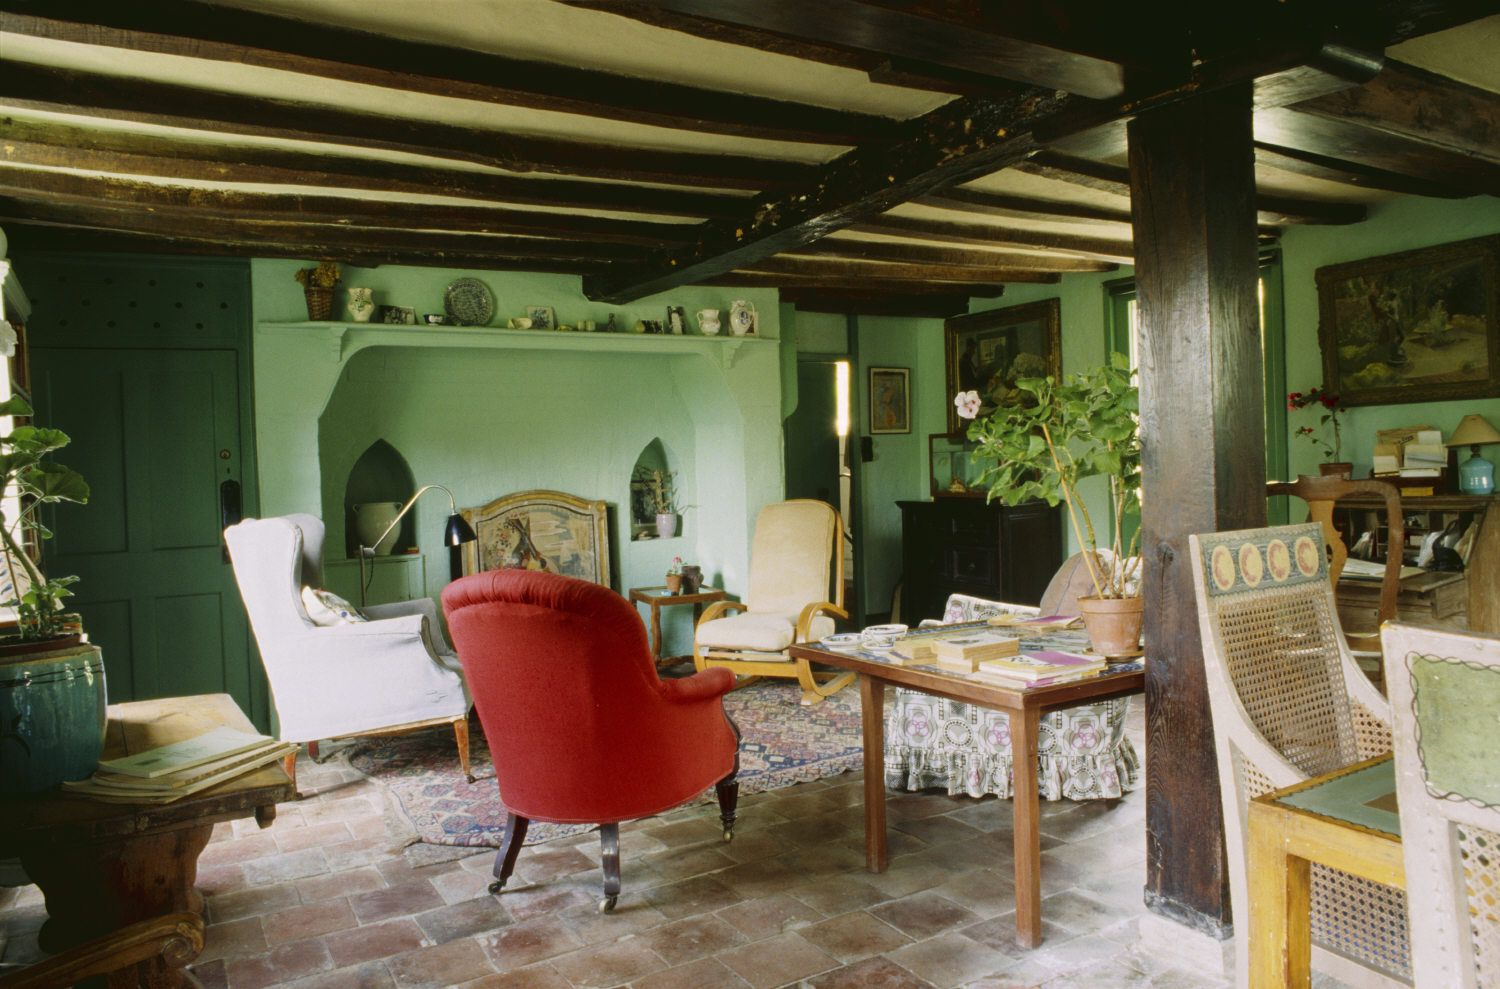 Monk's House close holiday gallery next holiday image previous holiday  image Monk's House Rodmell Near Lewes East Sussex BN7 3HF 01273 474 760  Website 'That will be our address for ever and ever', declared Virginia  Woolf in 1919 when she and ...